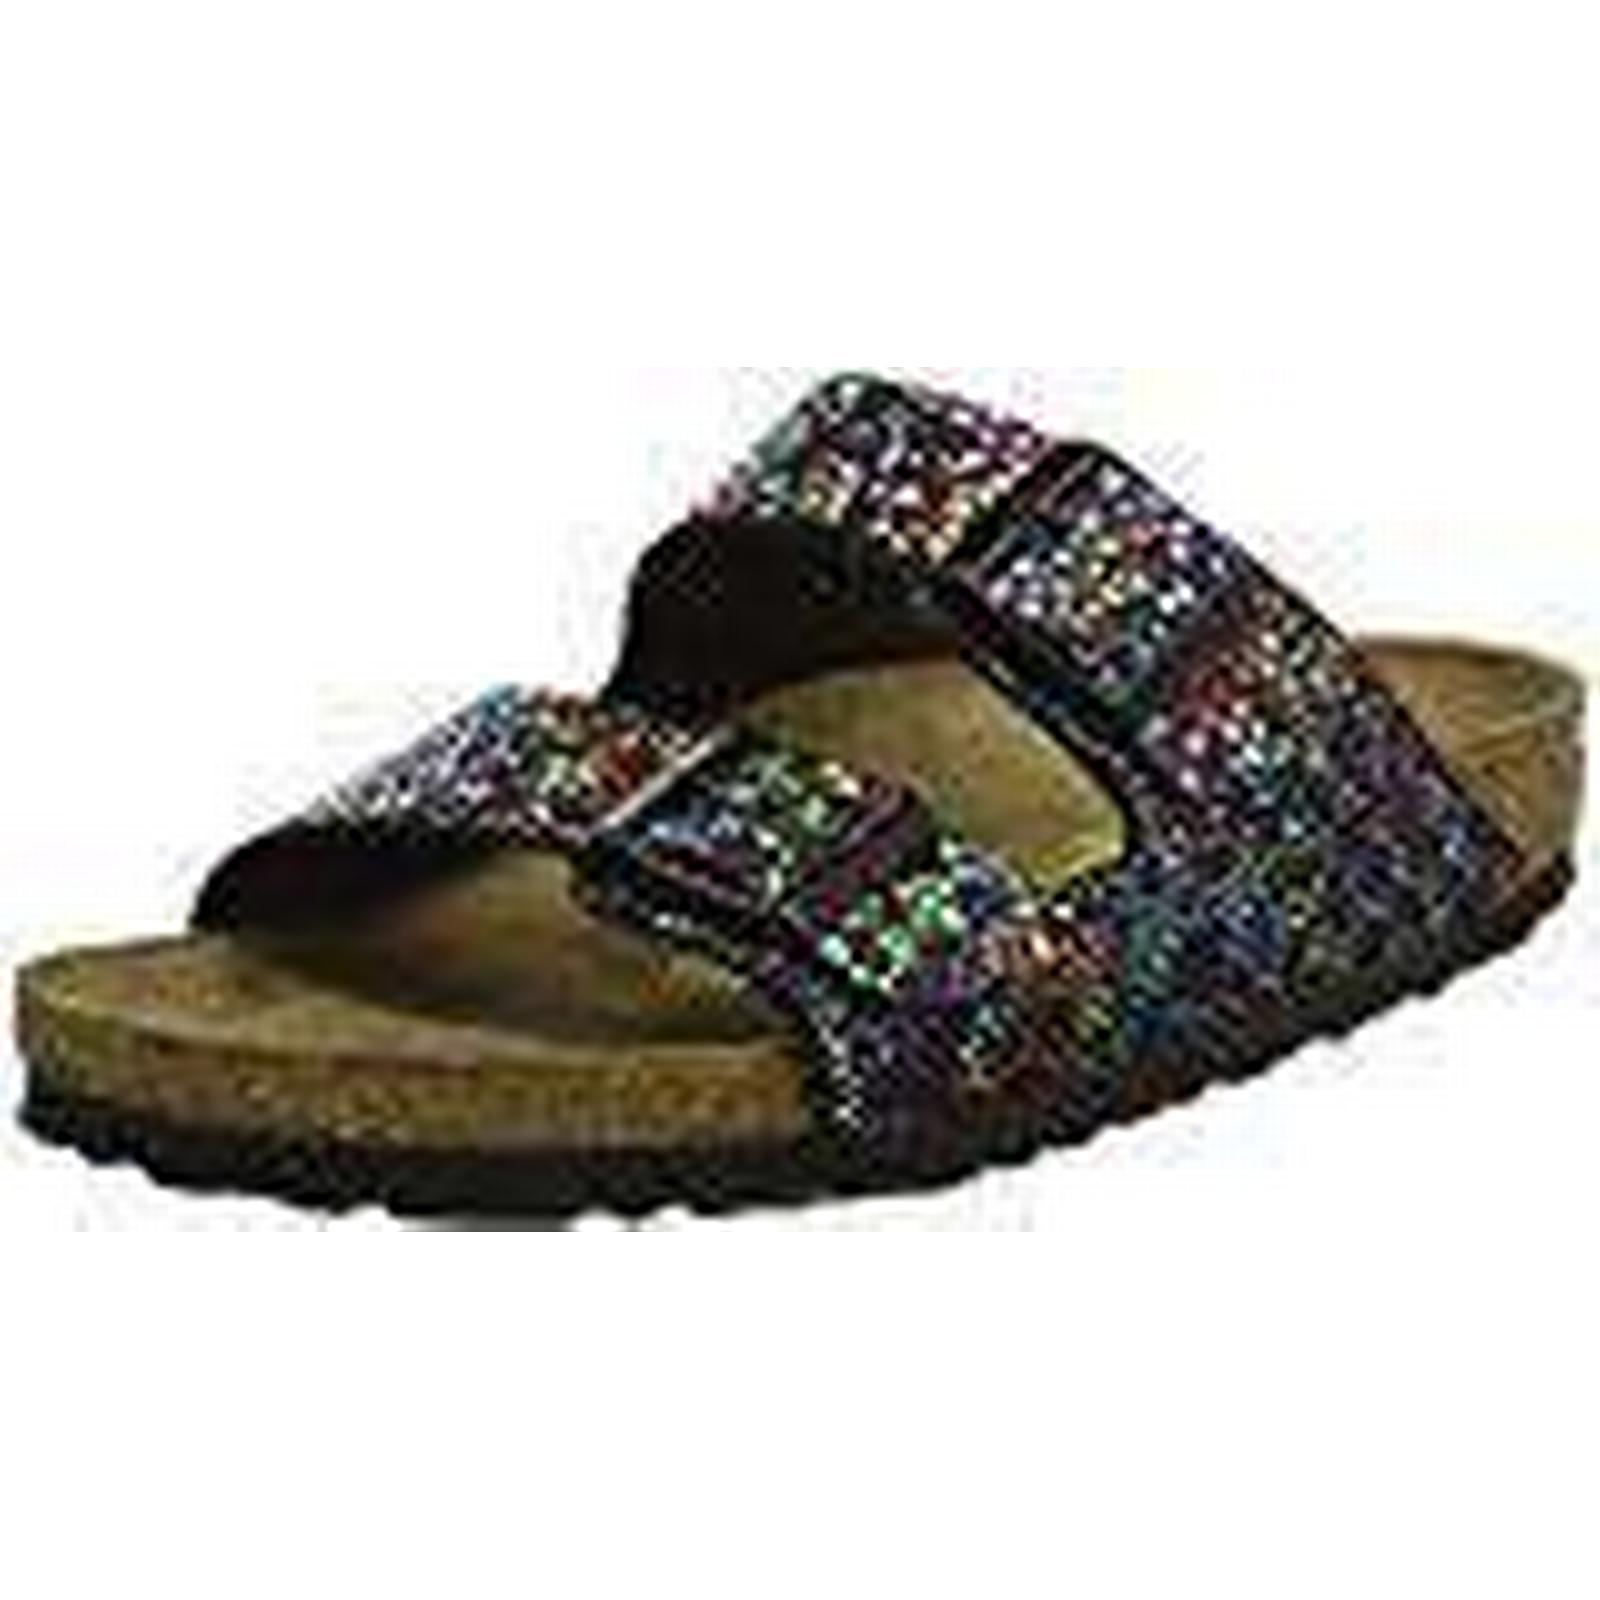 Birkenstock Arizona, Women's Heels Sandals Open Toe Sandals, Multicolour (Multicolore UK Oriental Mosaic Black), 7 UK (Multicolore (40 EU) f3dcd0